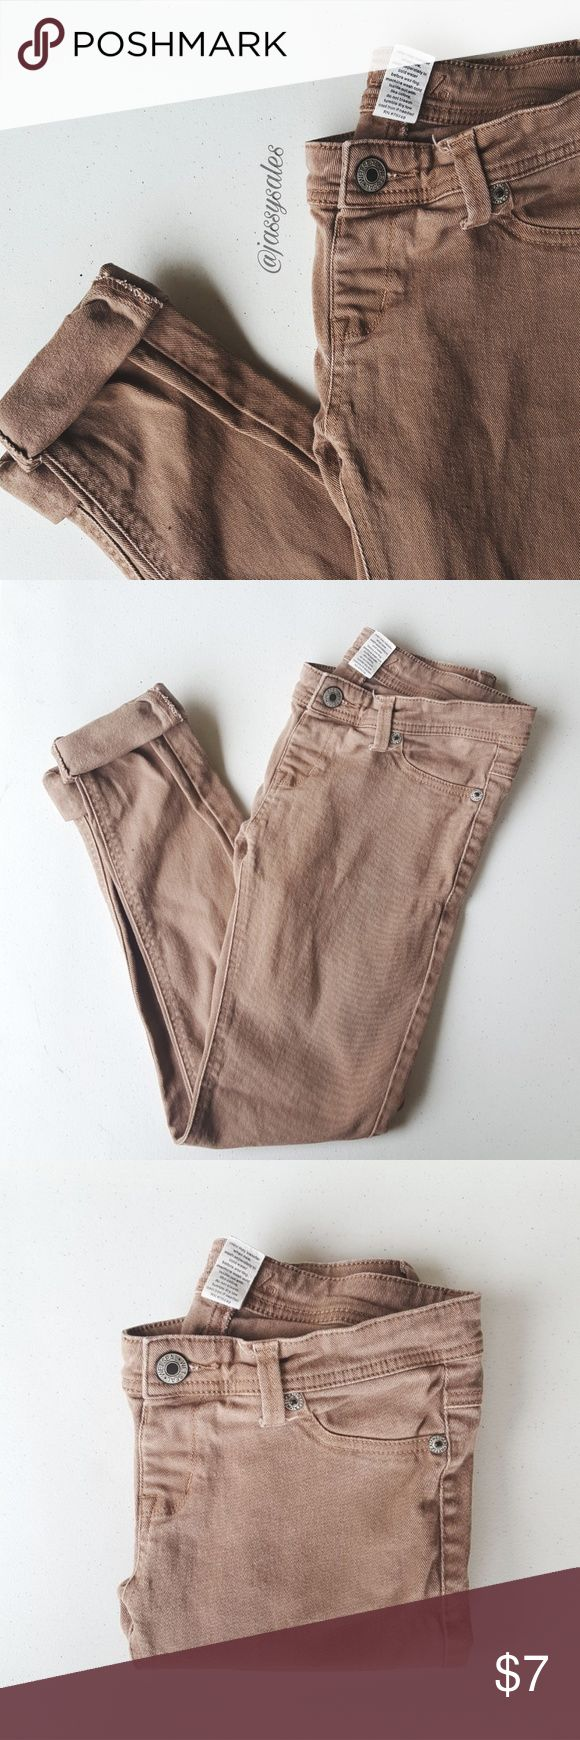 Wet Seal Khaki Skinny Pants 》 Size: MEDIUM (Would recommend sizes 4-6 in jeans/pants)                                                                                             》 Condition: Very good; has minor piling and fading from normal wear but they still have tons of life left! (:  ♡ Ask about bundling! I give special deals on bundles! ♡ I move out AUGUST 26TH! EVERYTHING MUST GO! Wet Seal Pants Skinny